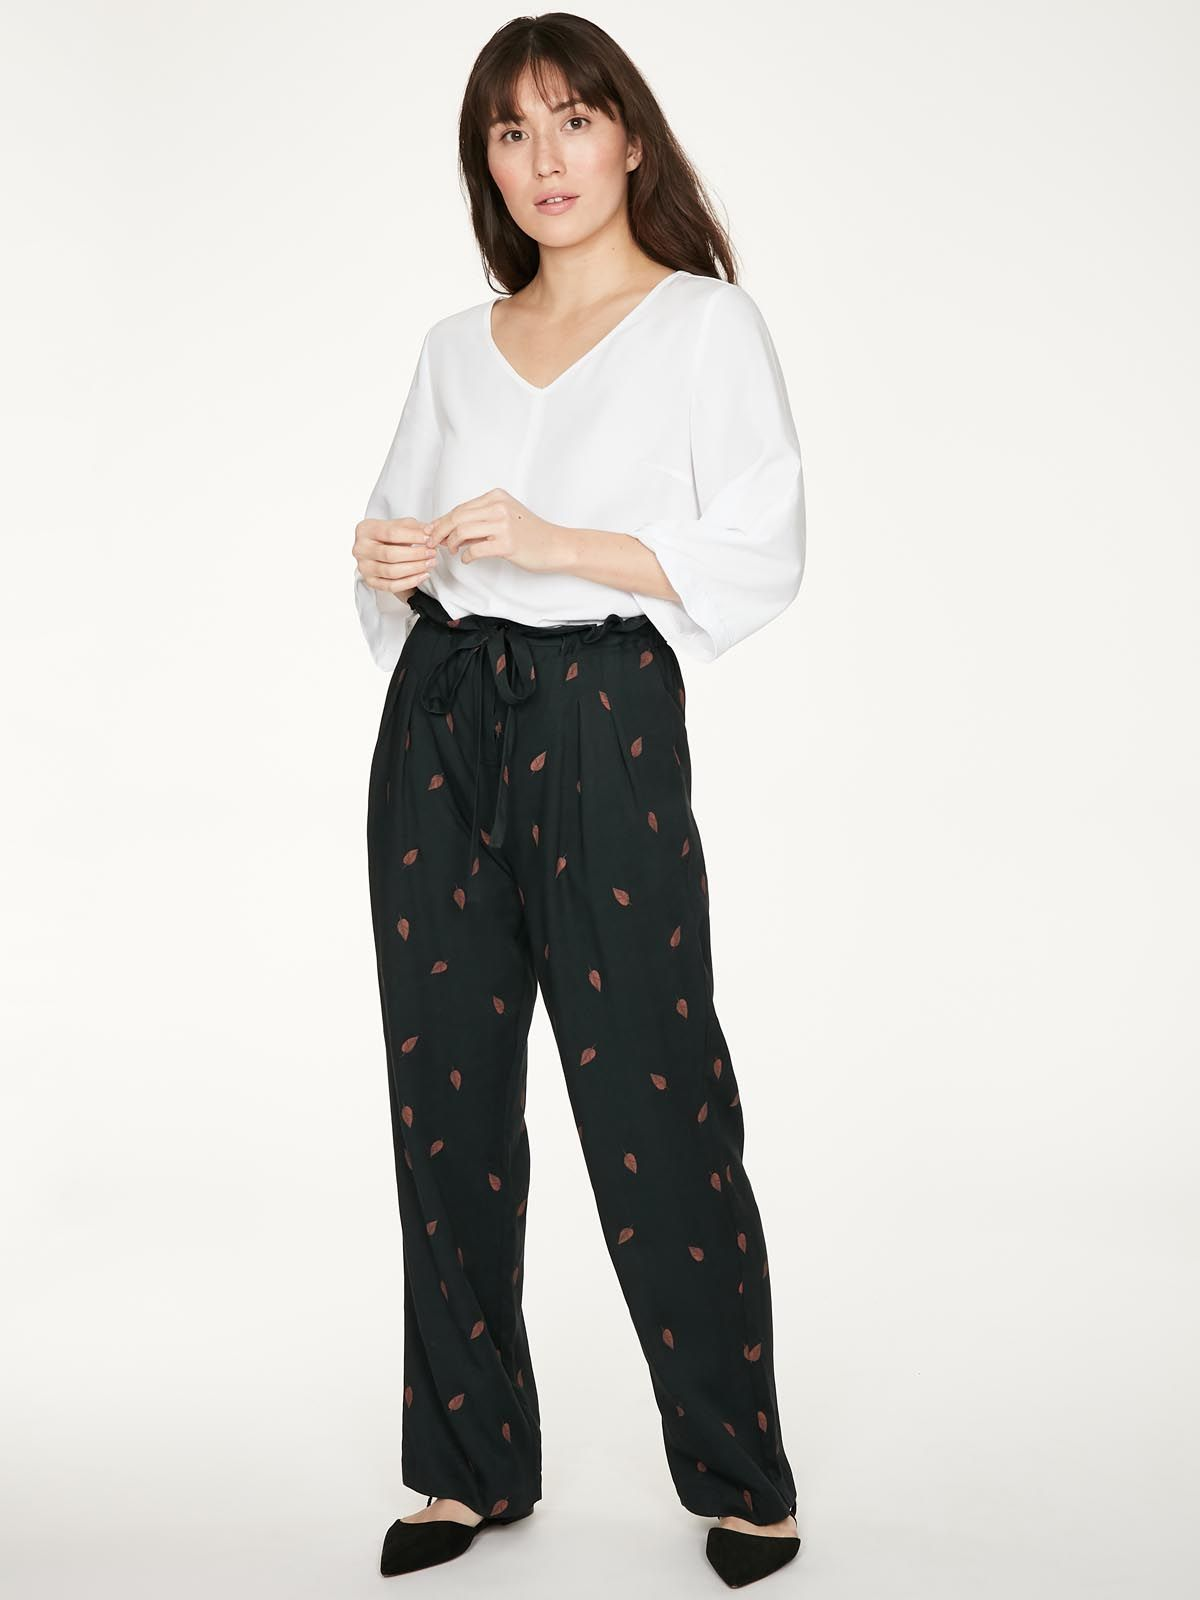 wwb4993-midnight-navy–rosamund-paperbag-trousers-in-midnight-navy-bamboo–7(2)